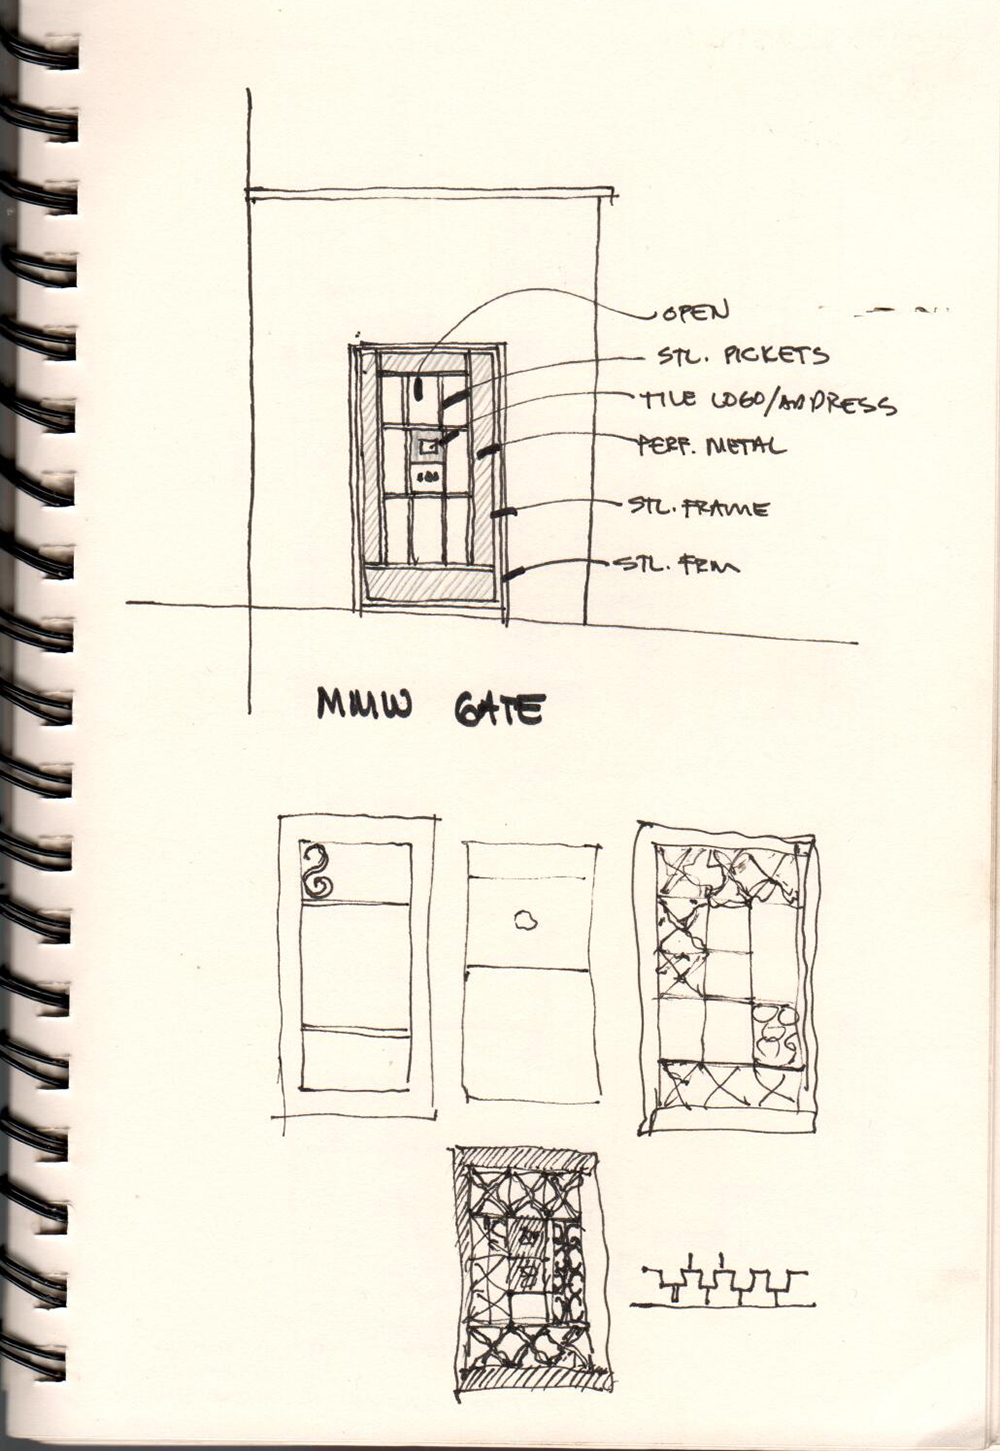 georgearchitecture_studio_mmw-gate_sketch01.jpg